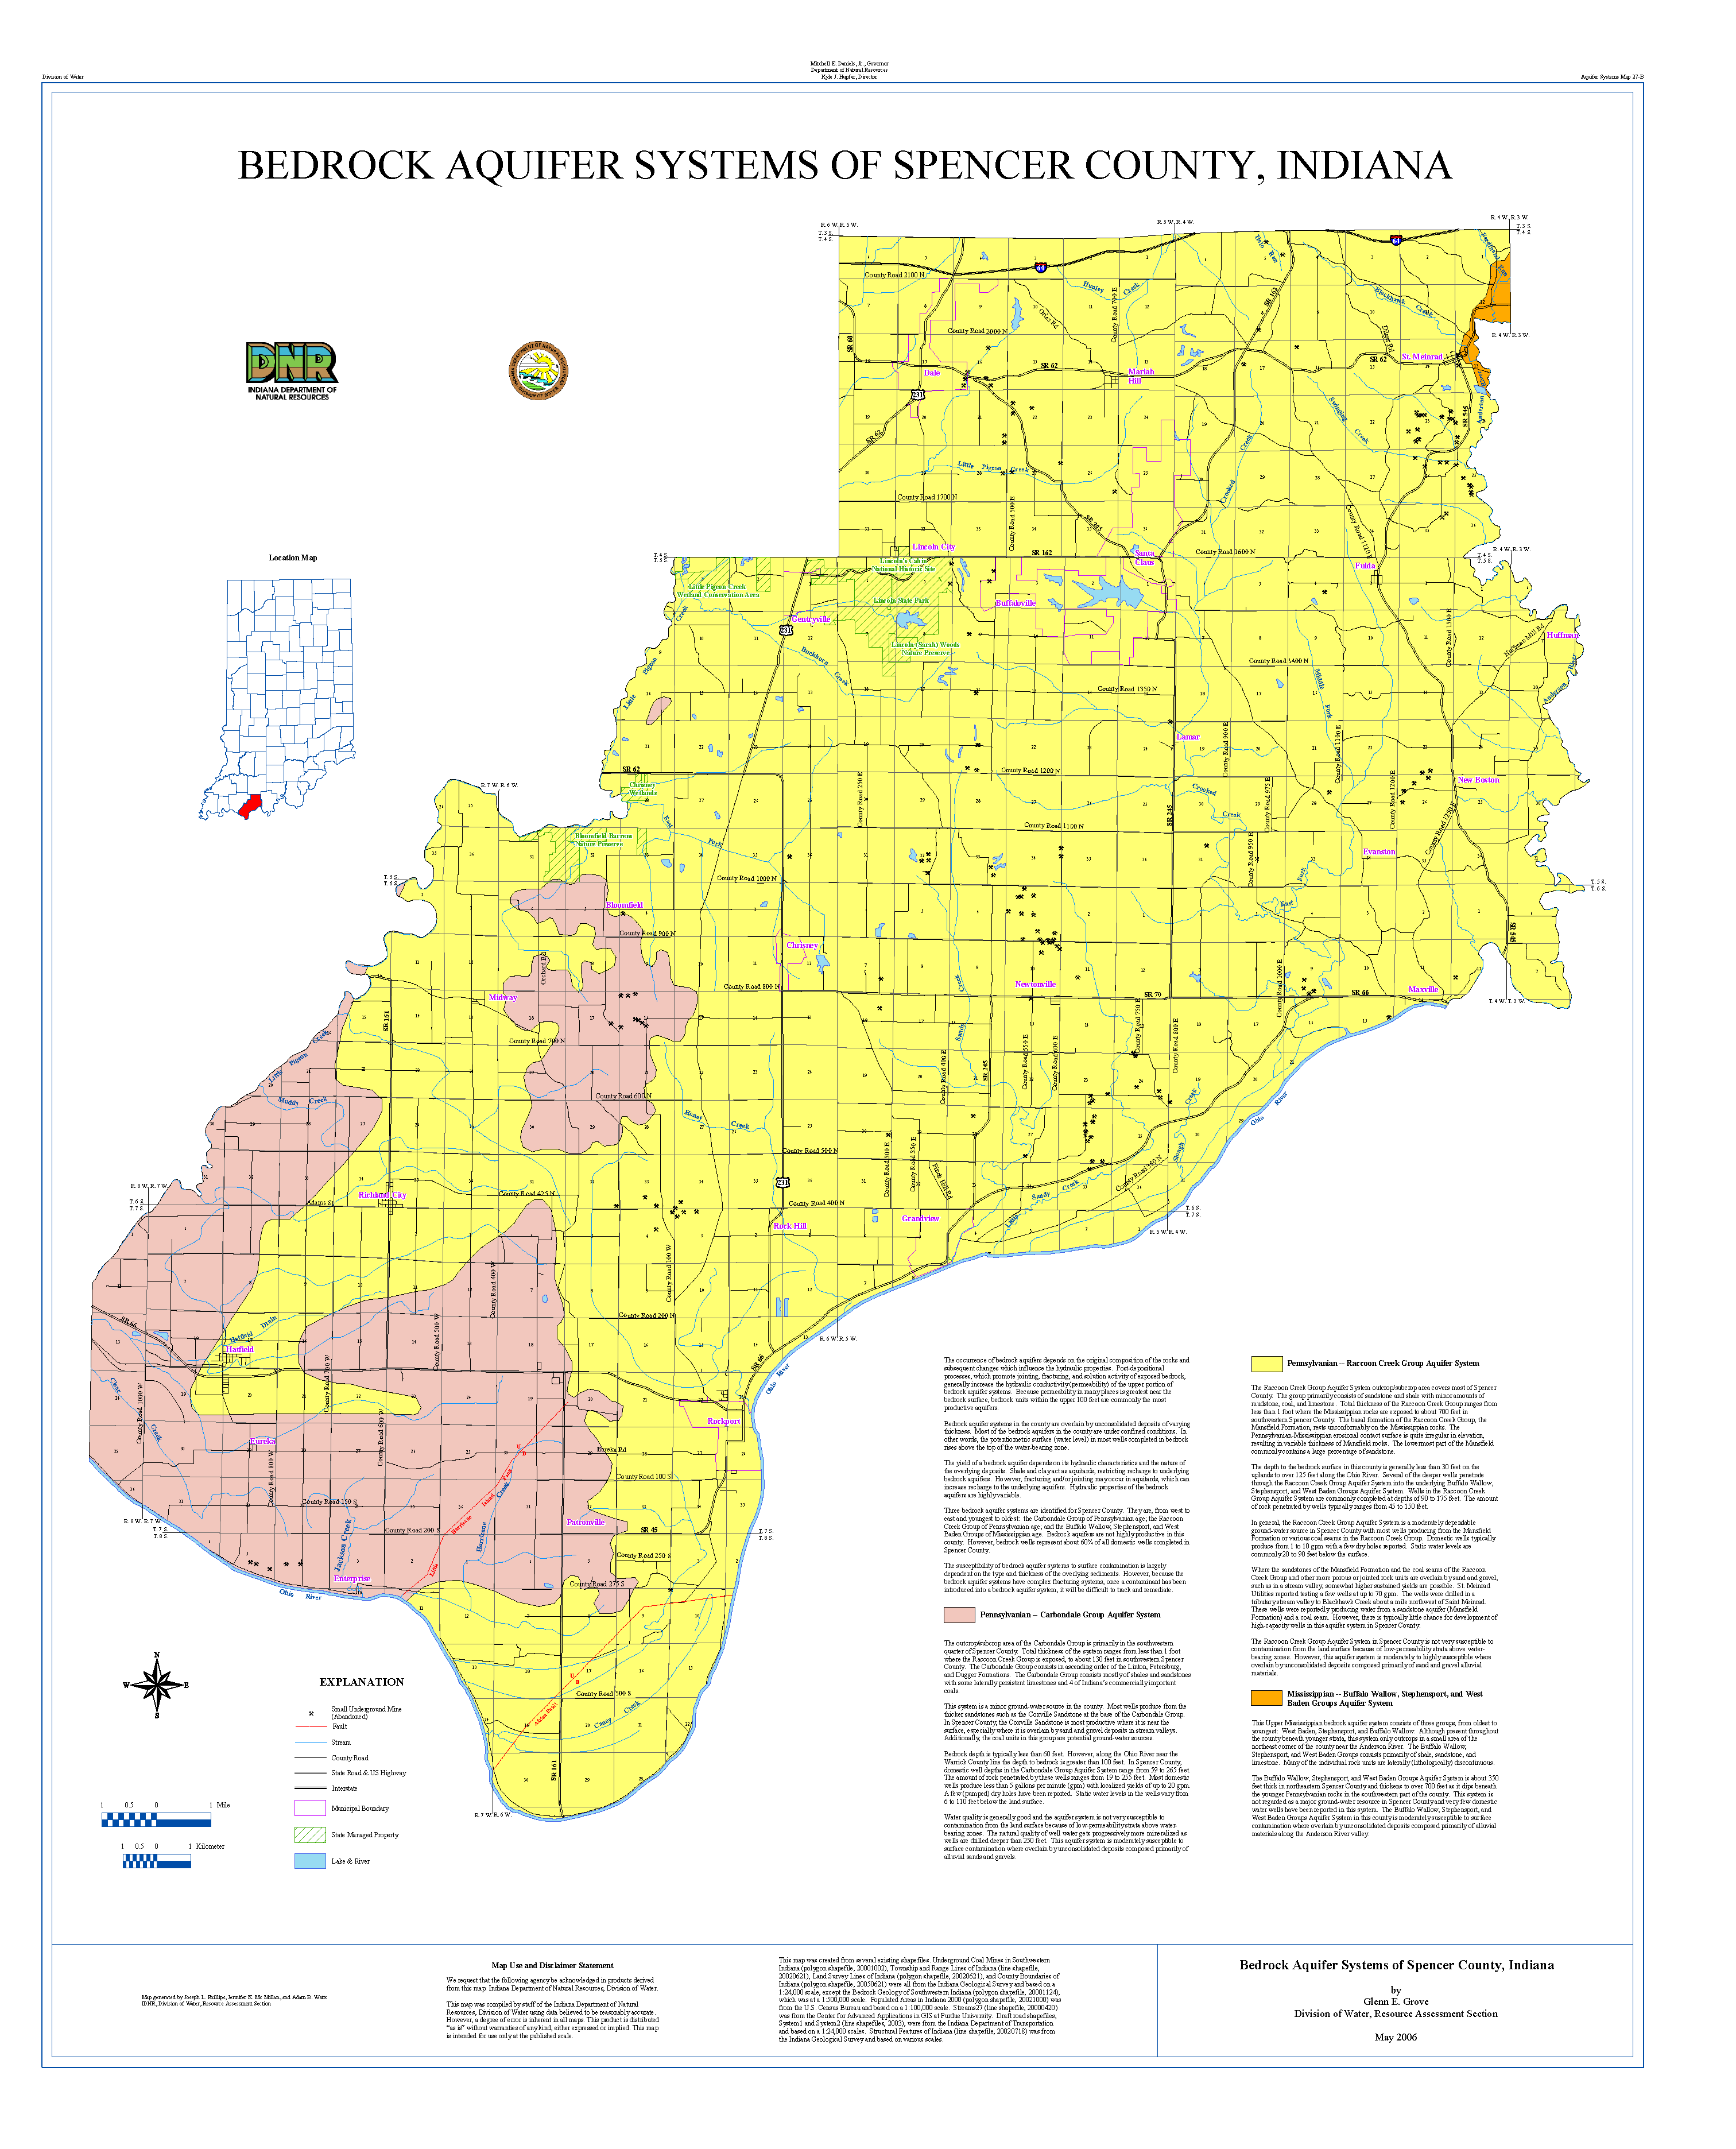 Dnr Aquifer Systems Maps 27 A And 27 B Unconsolidated And Bedrock